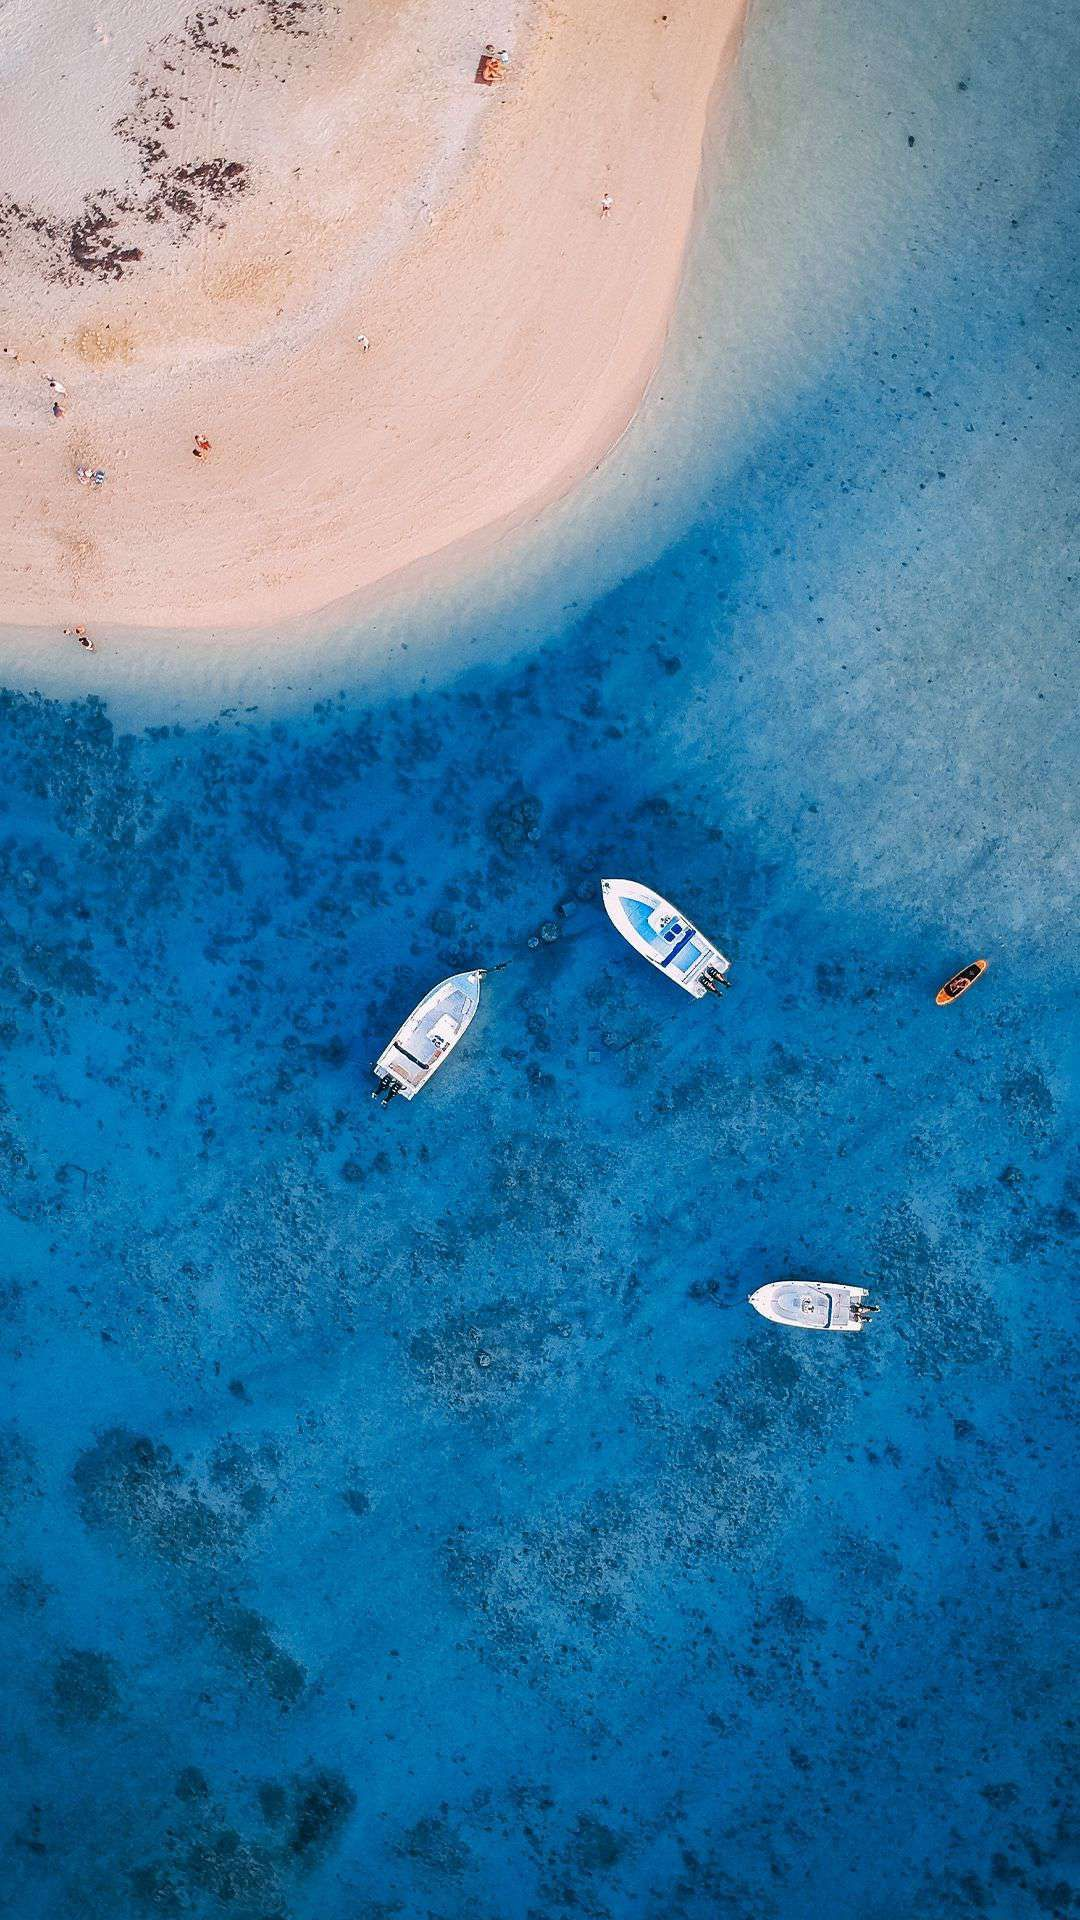 Beach People Boats Aerial View Iphone Wallpaper Boat Wallpaper Beach Wallpaper Iphone Google Pixel Wallpaper Wallpaper coast aerial view sea boat